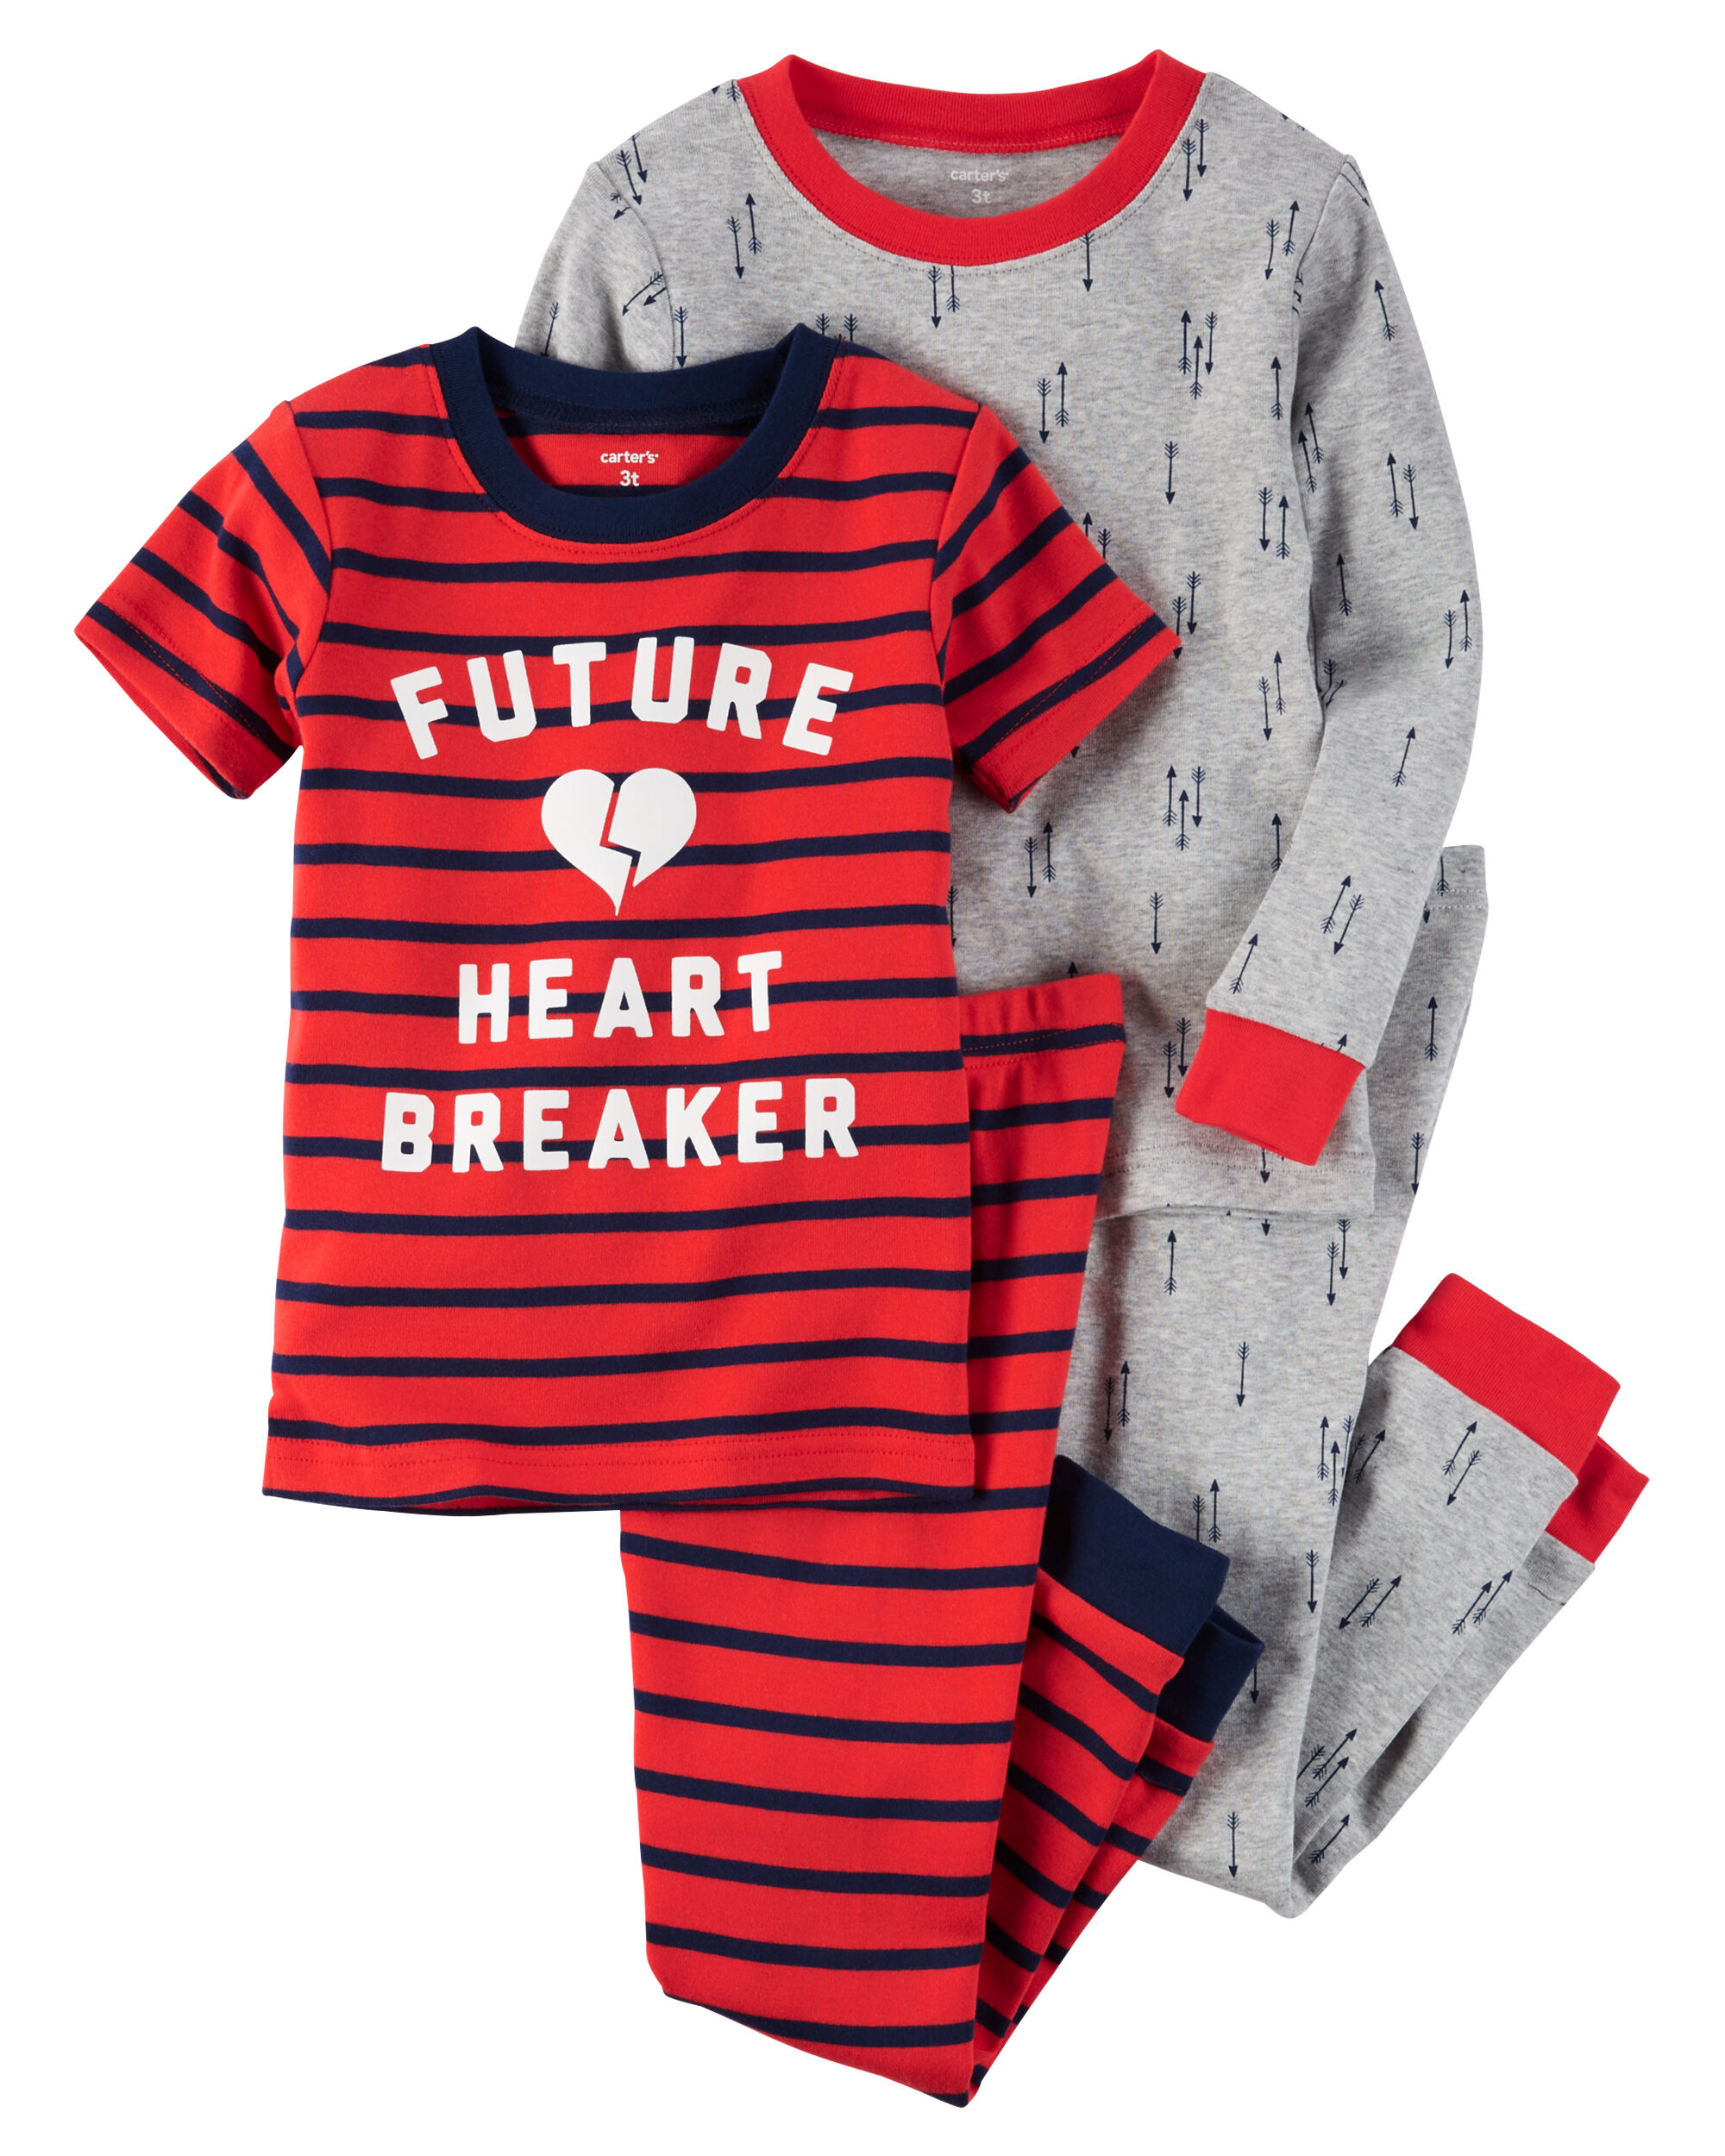 Red Arrows Children/'s Pyjamas  Official licensed product